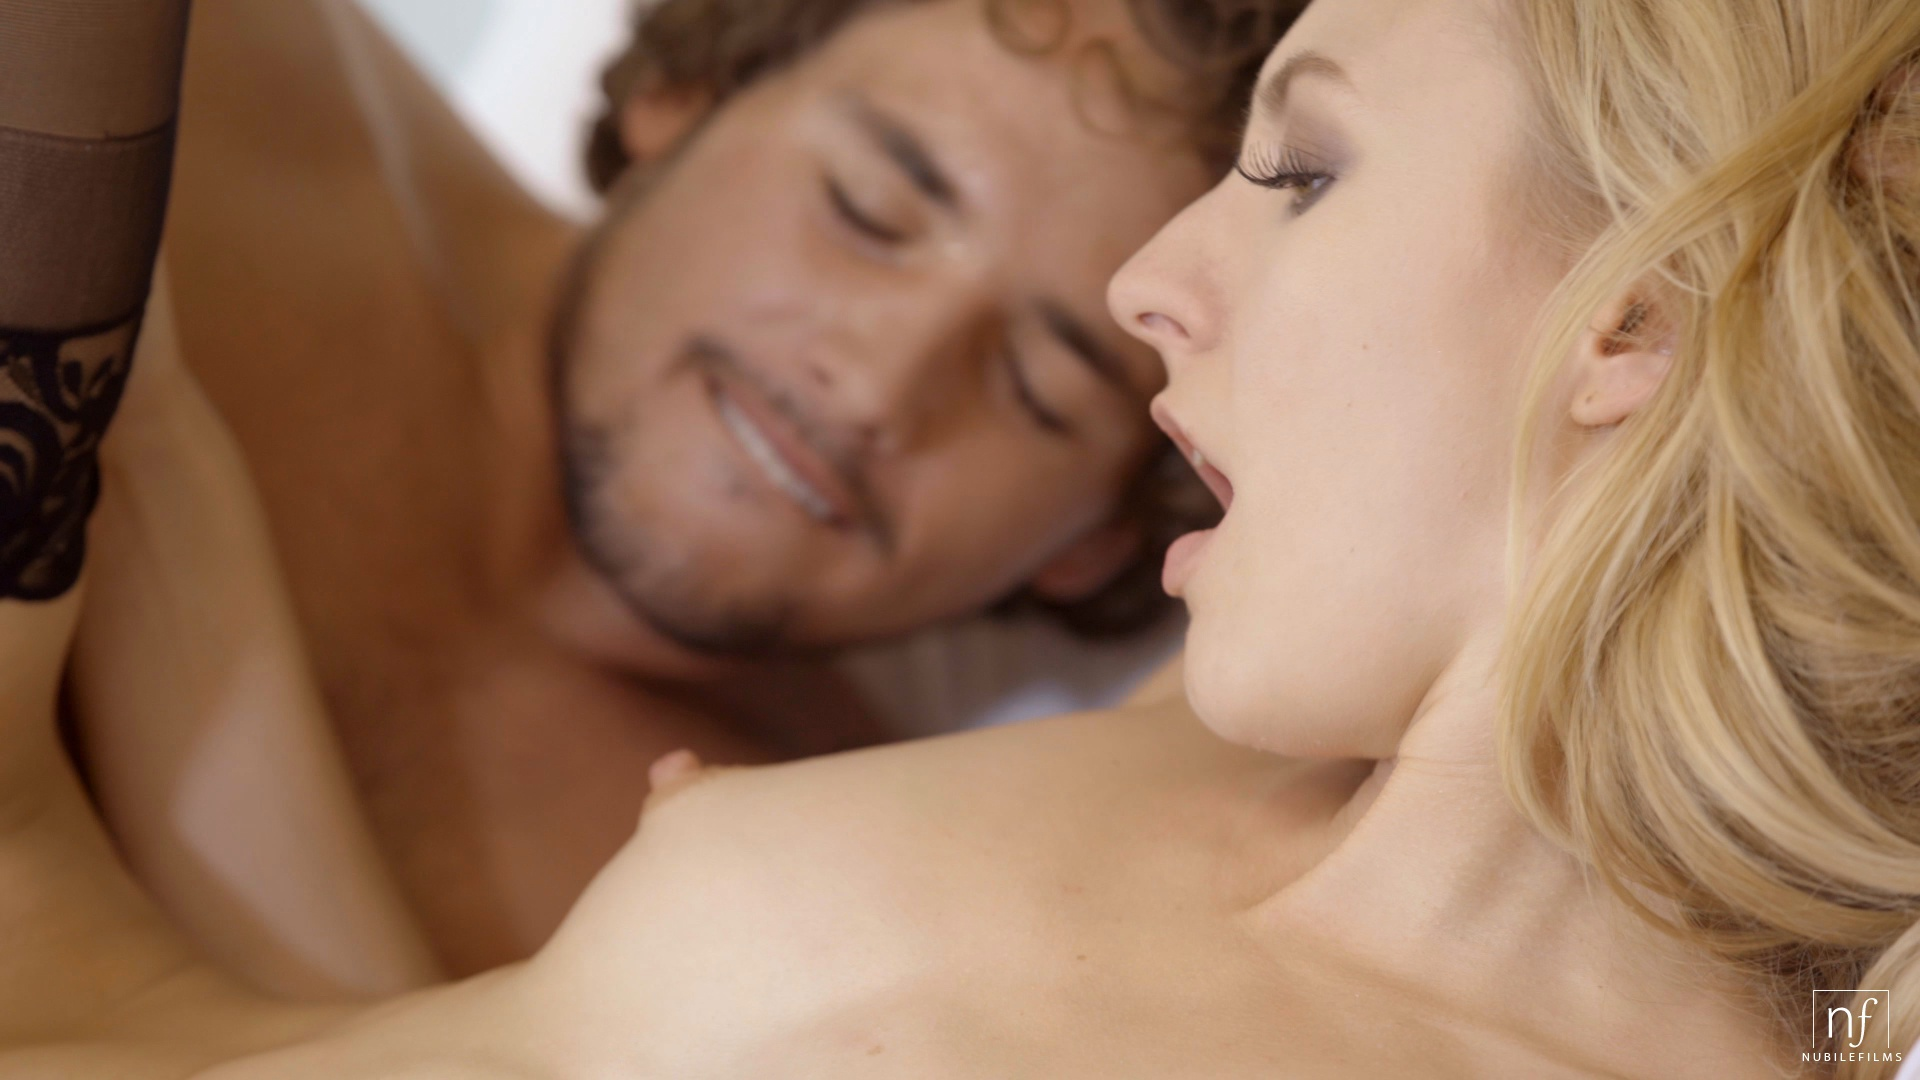 Blonde hottie Alexa wakes up lover to fuck first thing in the morning in HD